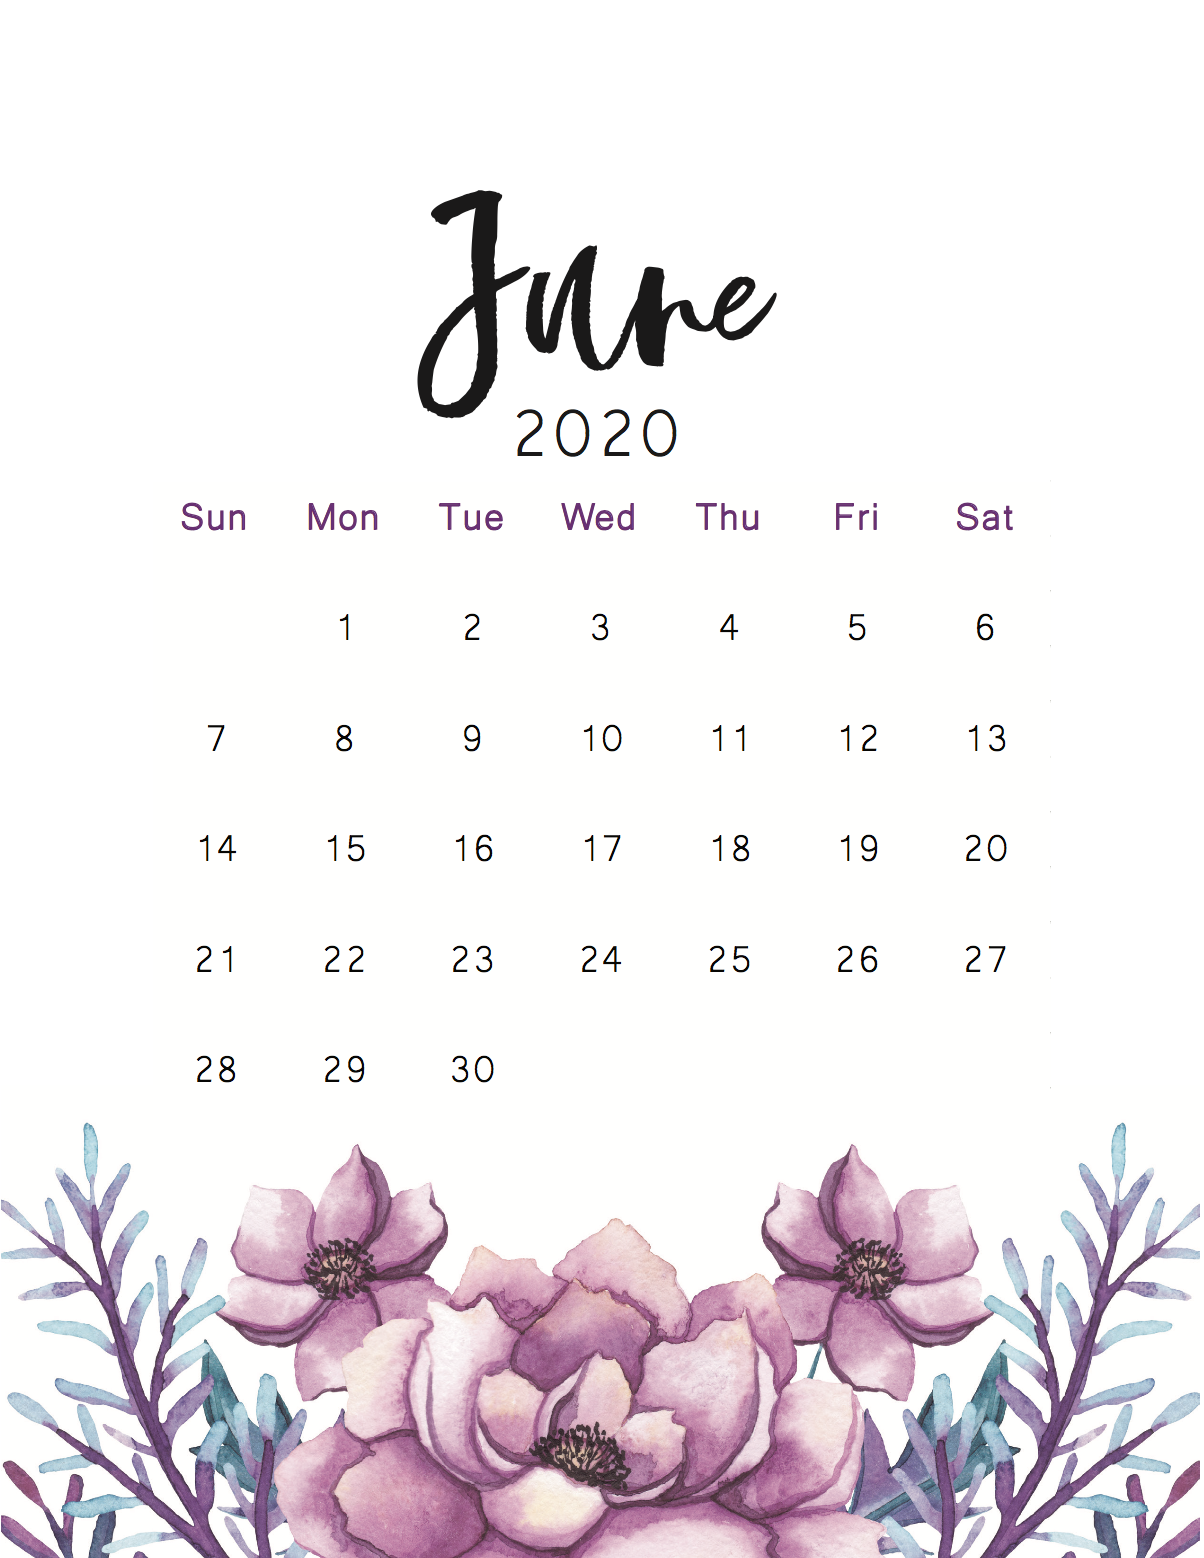 35 Best Printable June 2020 Calendars You Can Get For Free In 2020